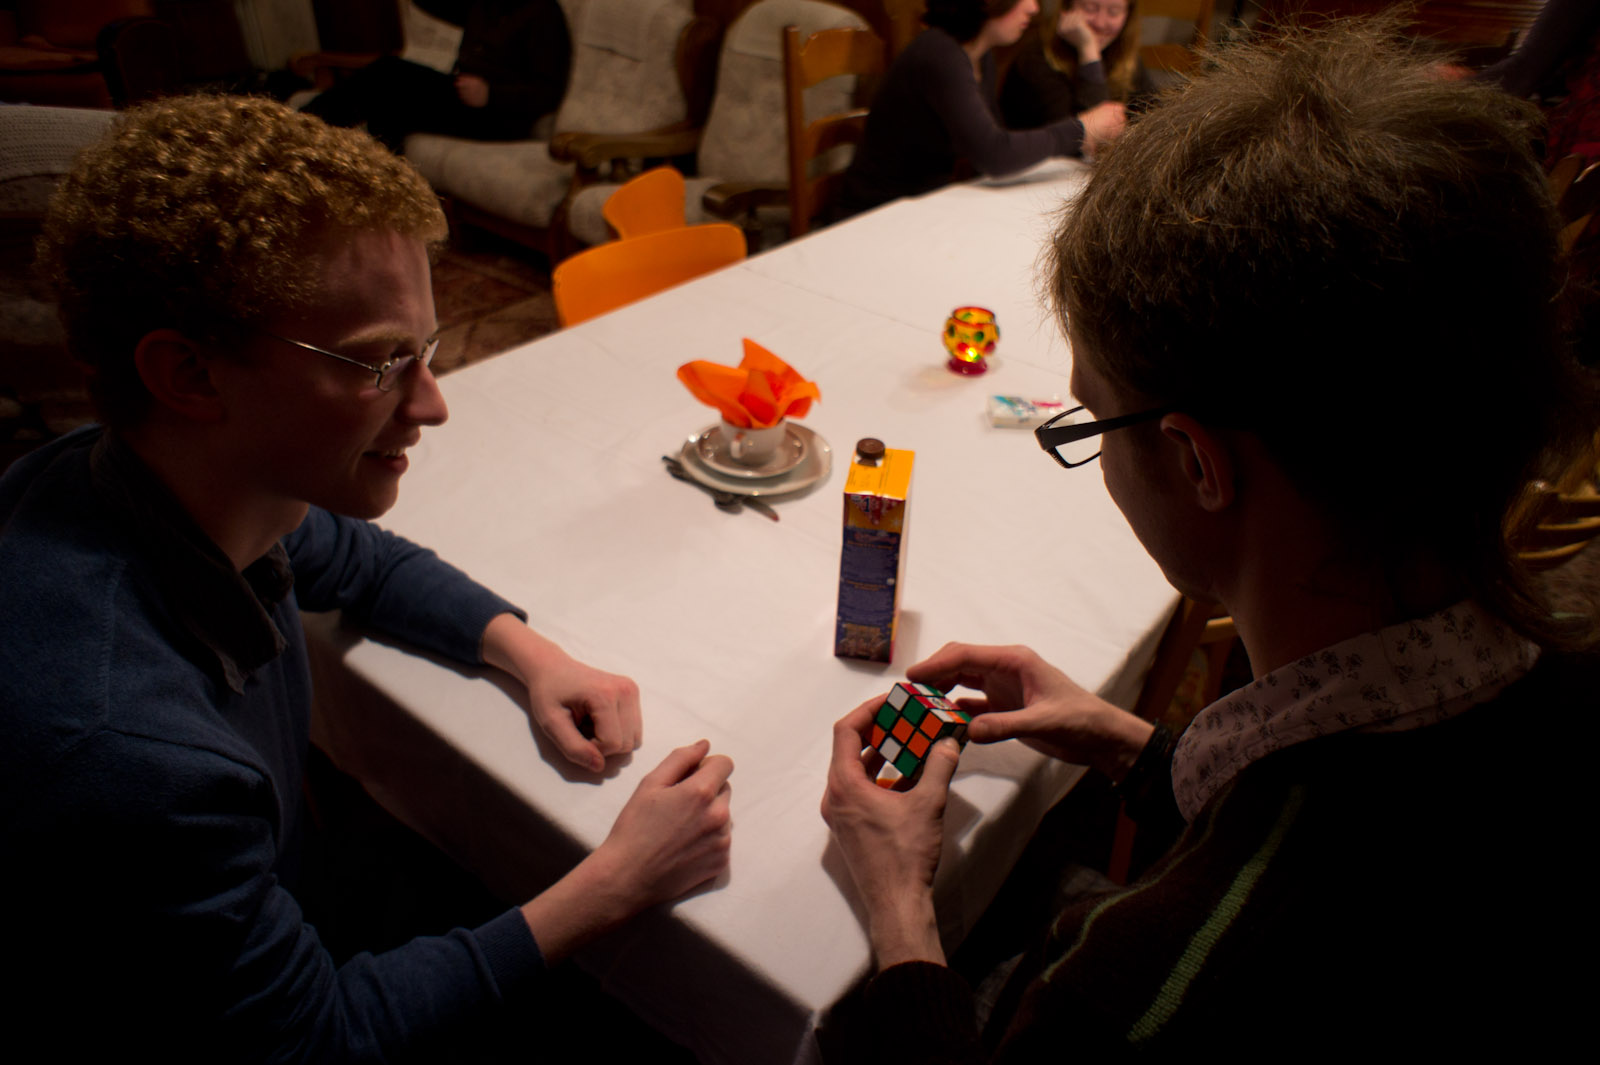 Roeland teaches Bronek to play Rubik